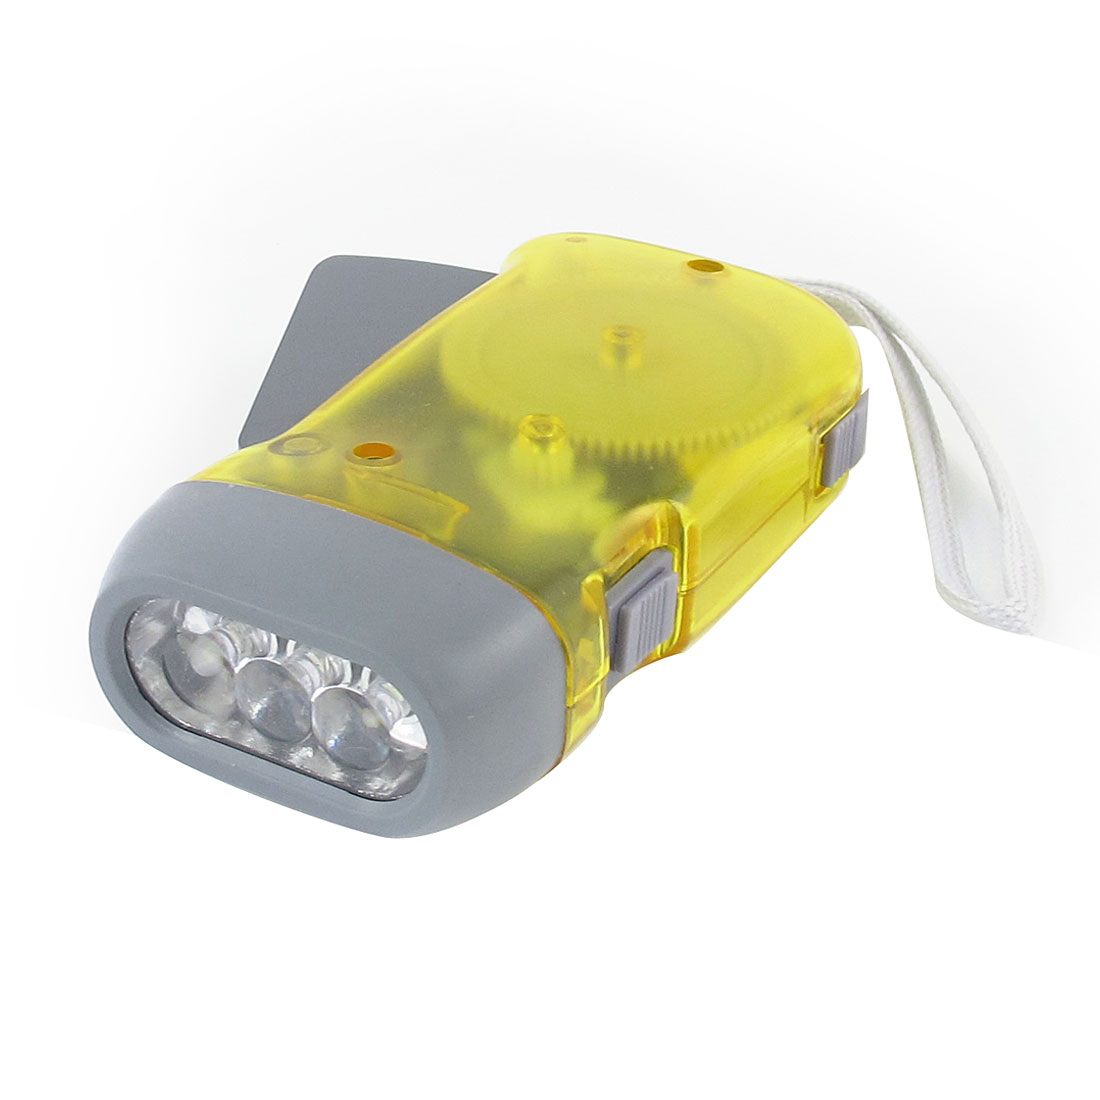 Travel Hand Pressing Recharger 3 LED Flashlight Clear Yellow Gray